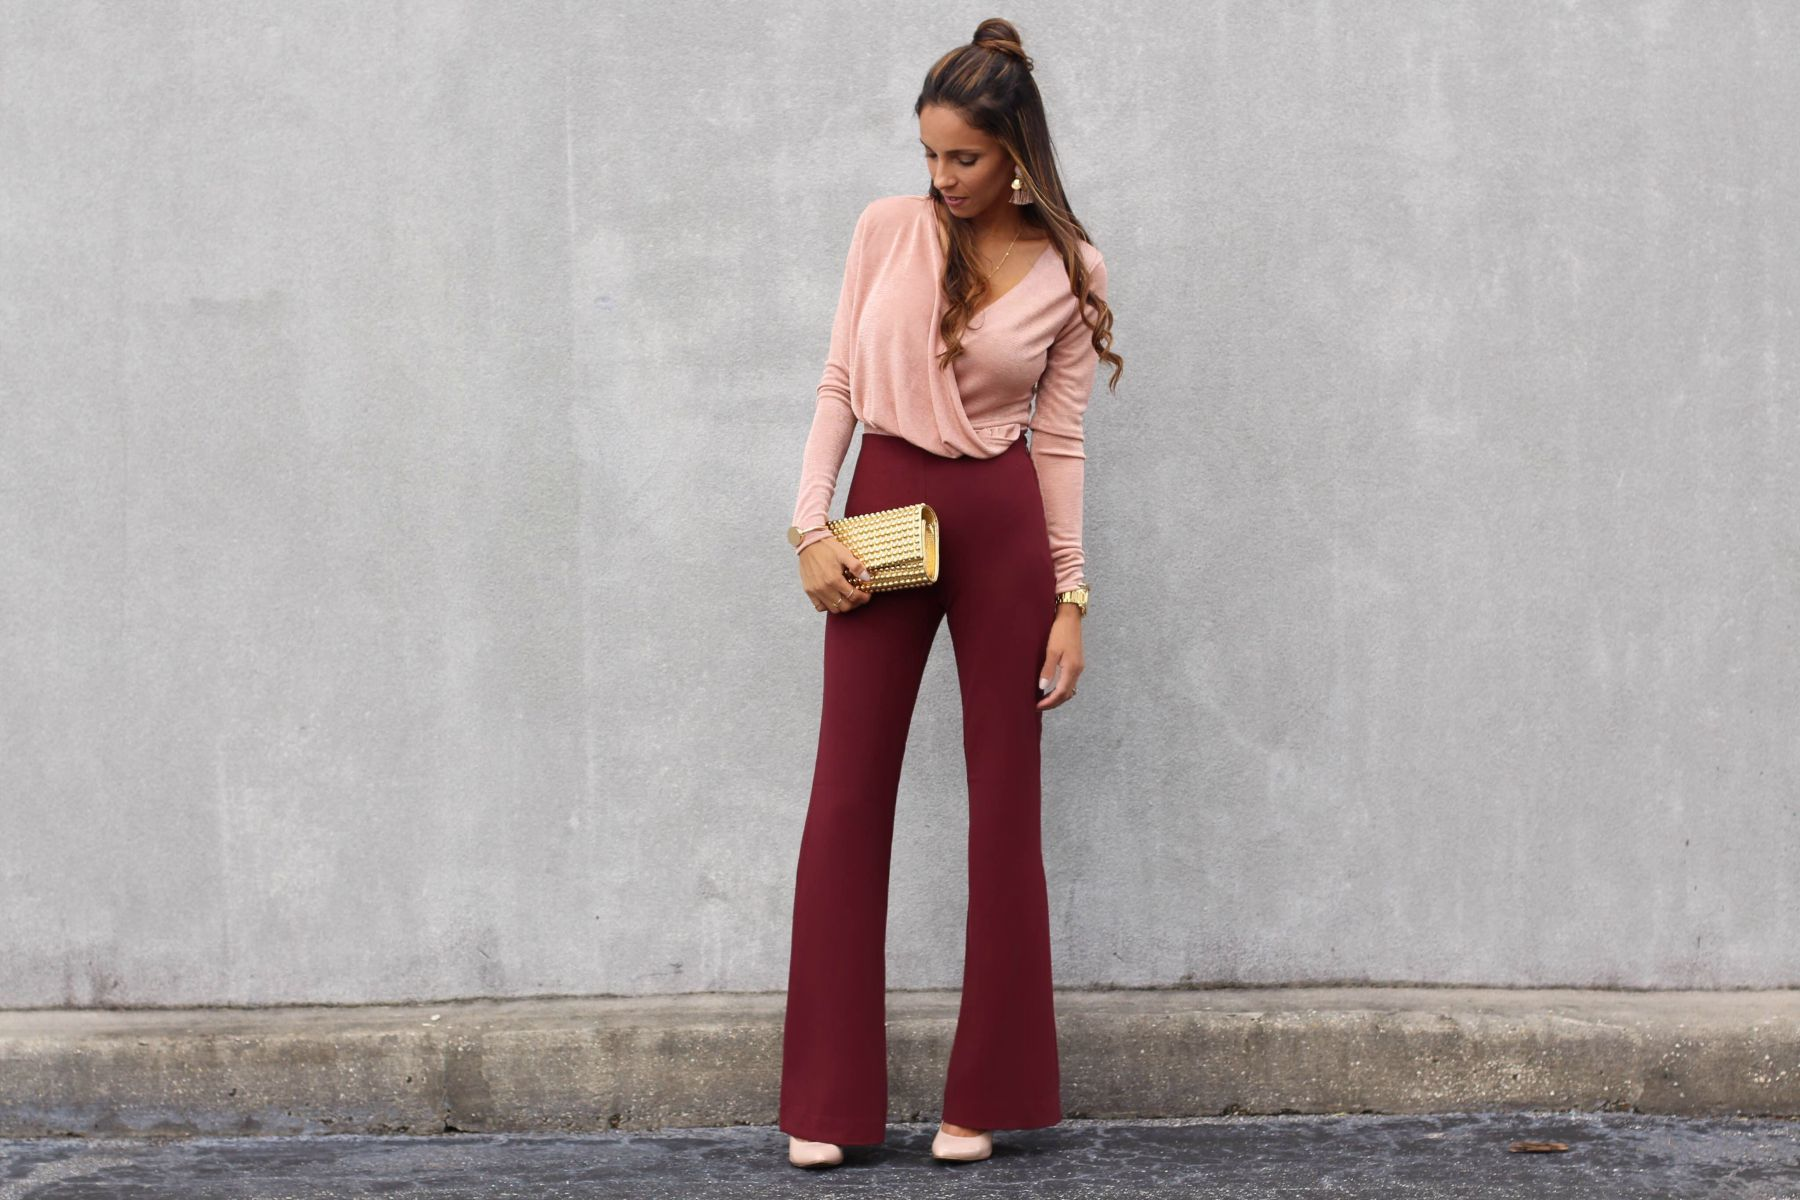 Blush bodysuit and burgundy pants